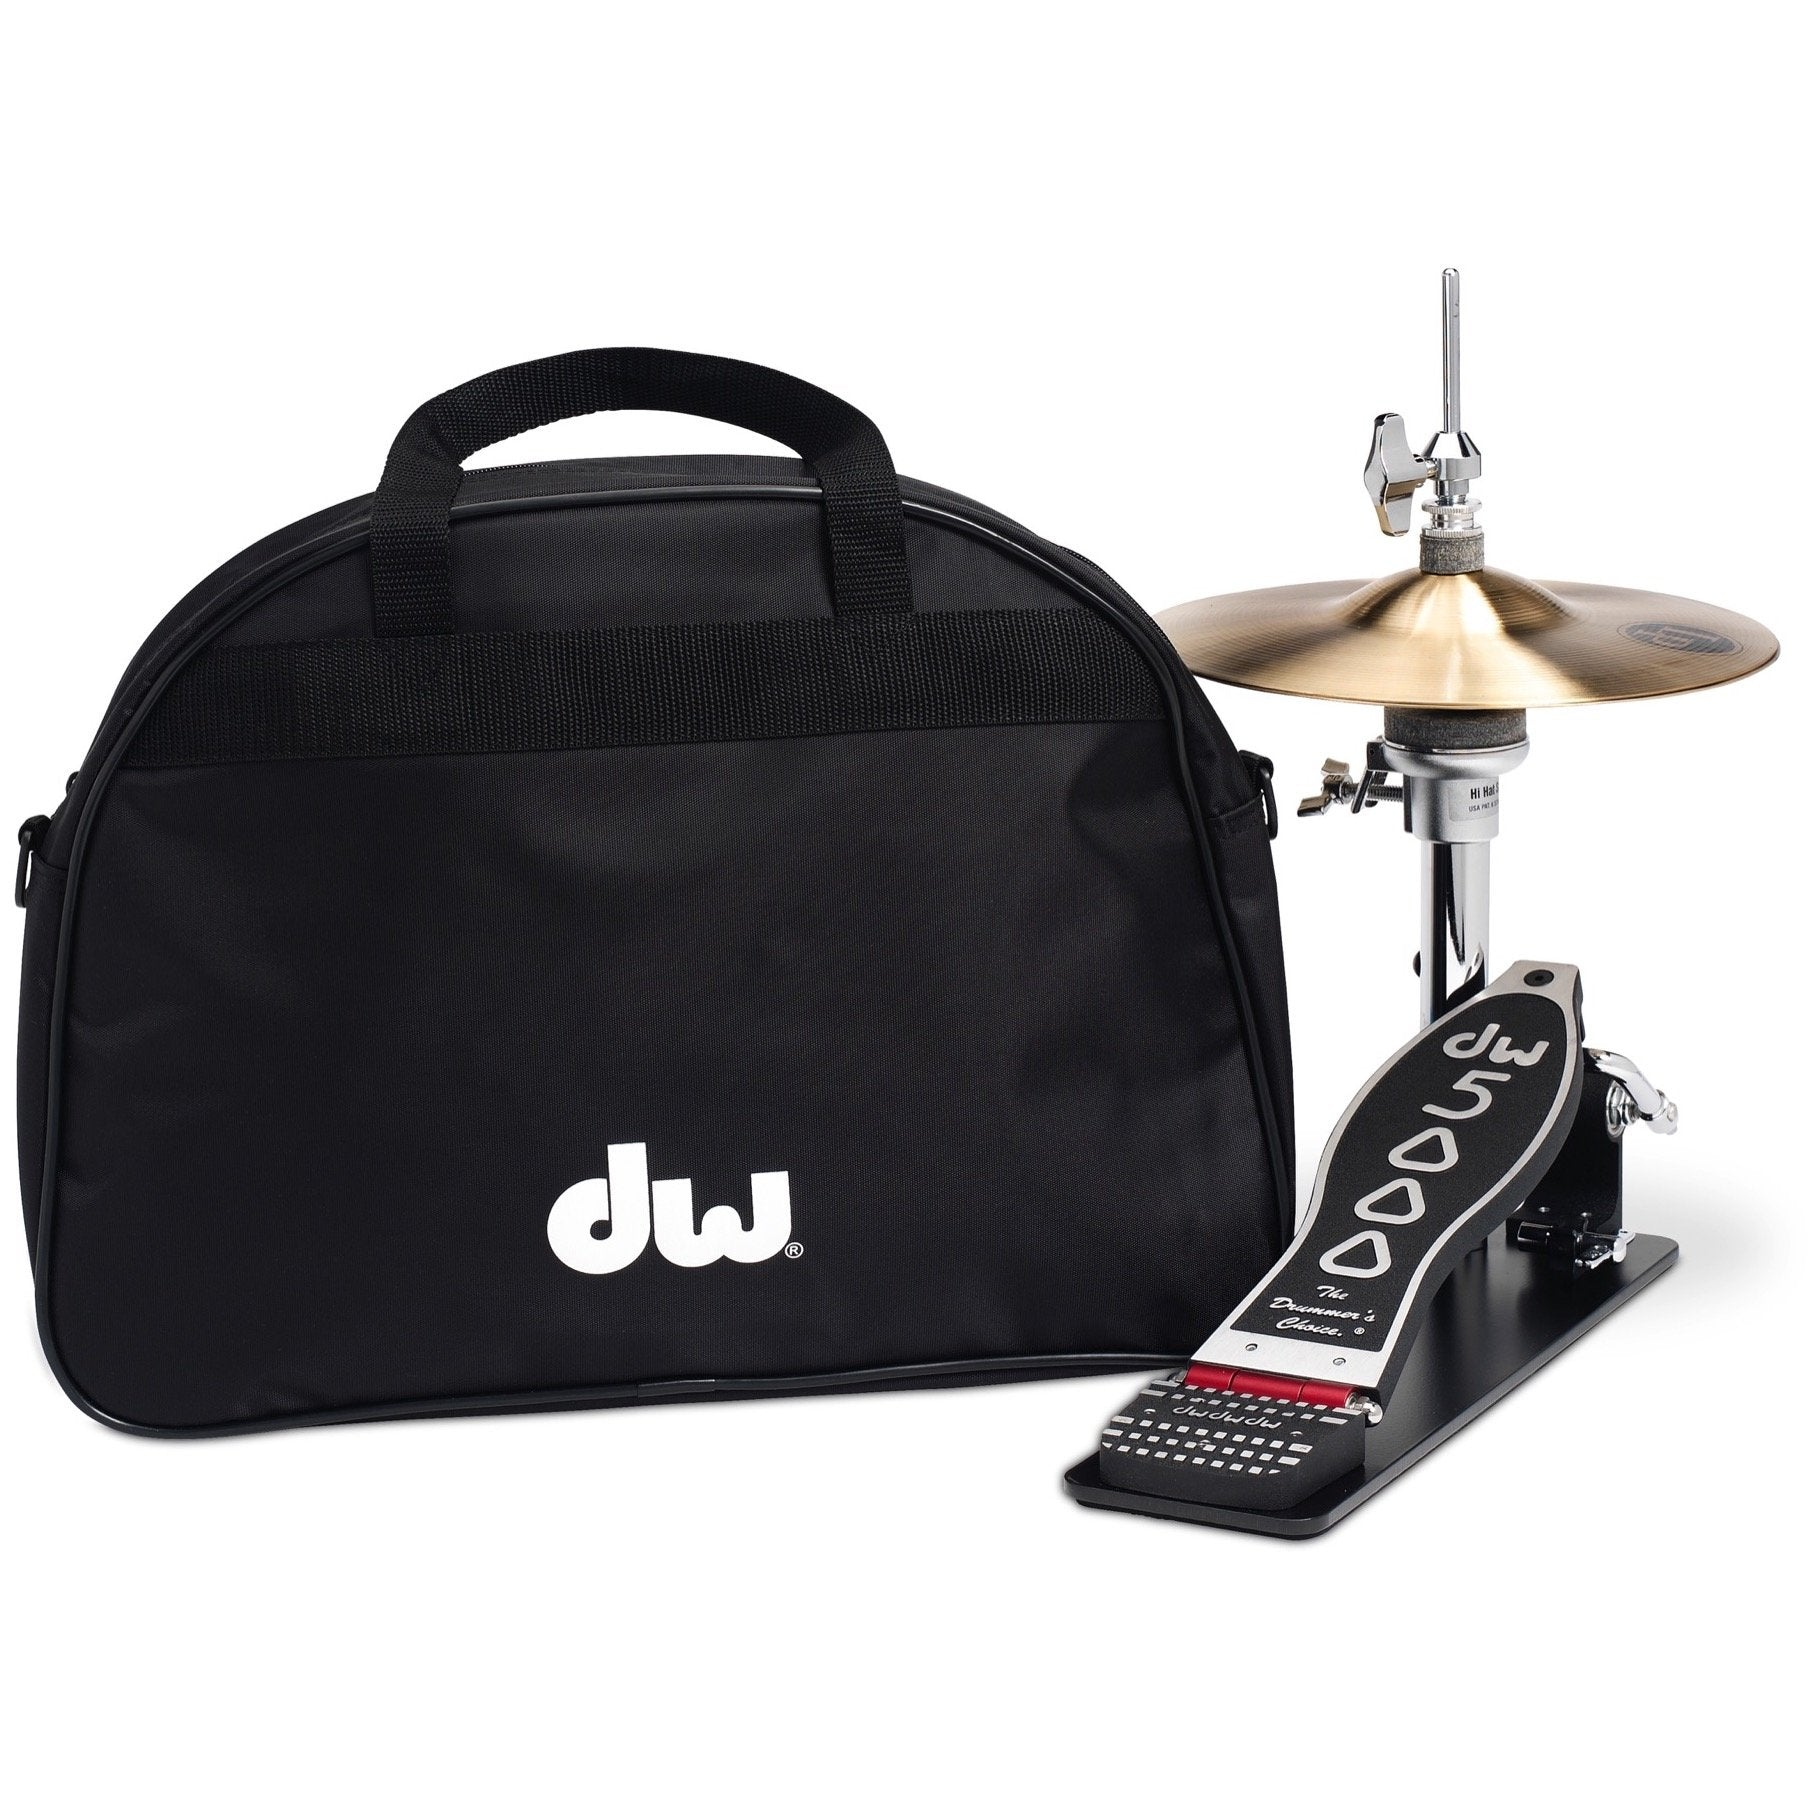 Drum Workshop 5500 Low Boy Hi-Hat Pedal with Cymbals